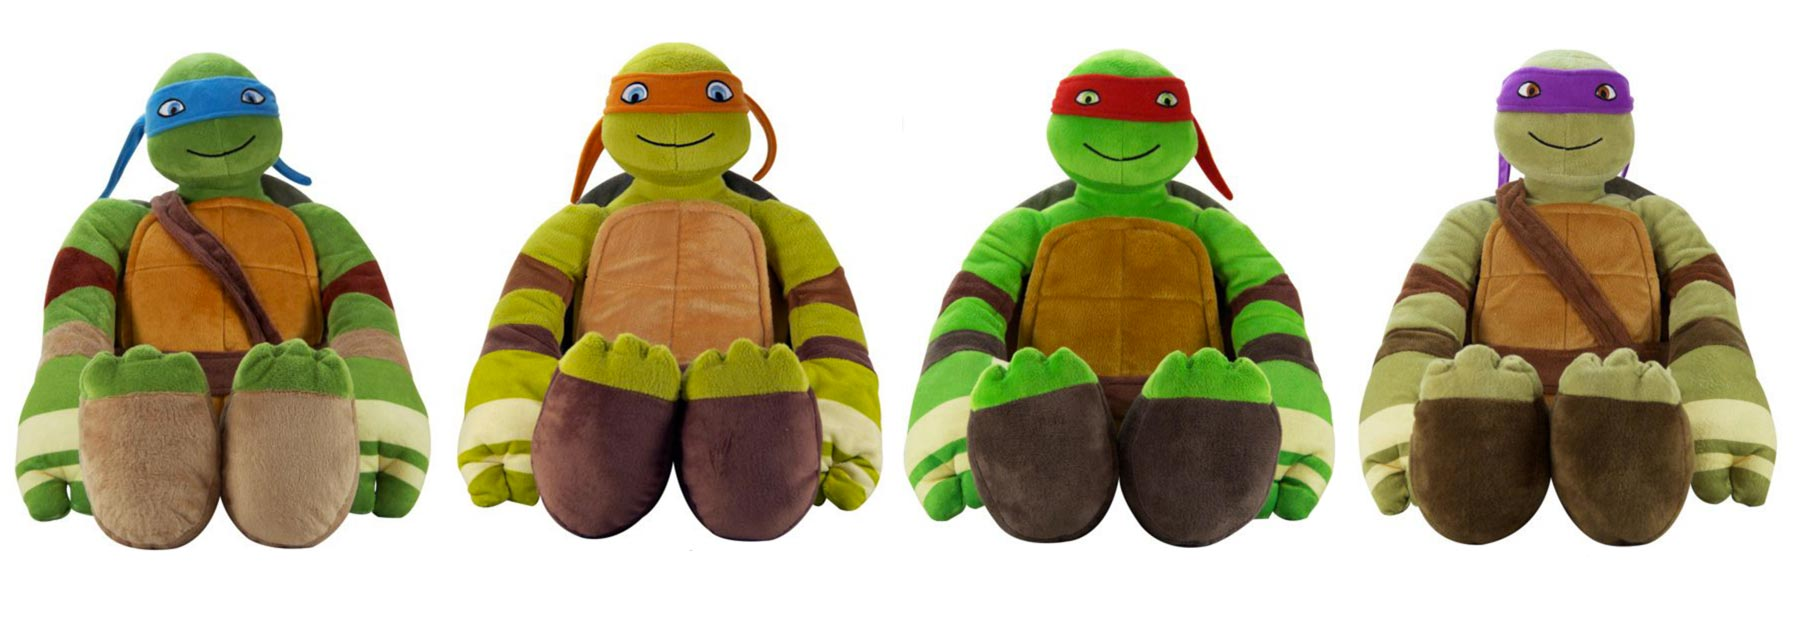 TMNT Pillow Buddies